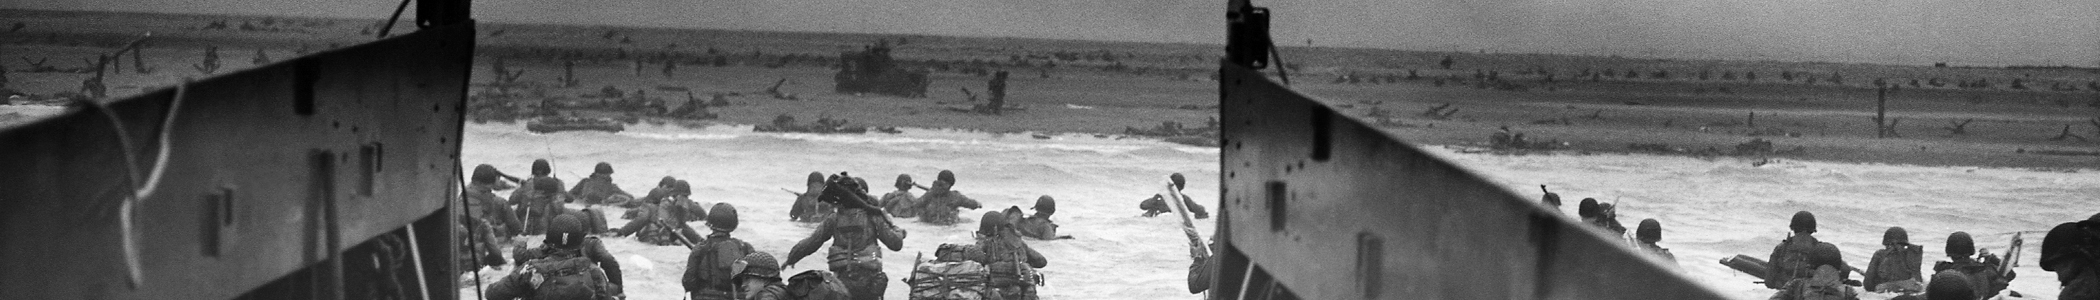 D-Day beaches – Travel guide at Wikivoyage